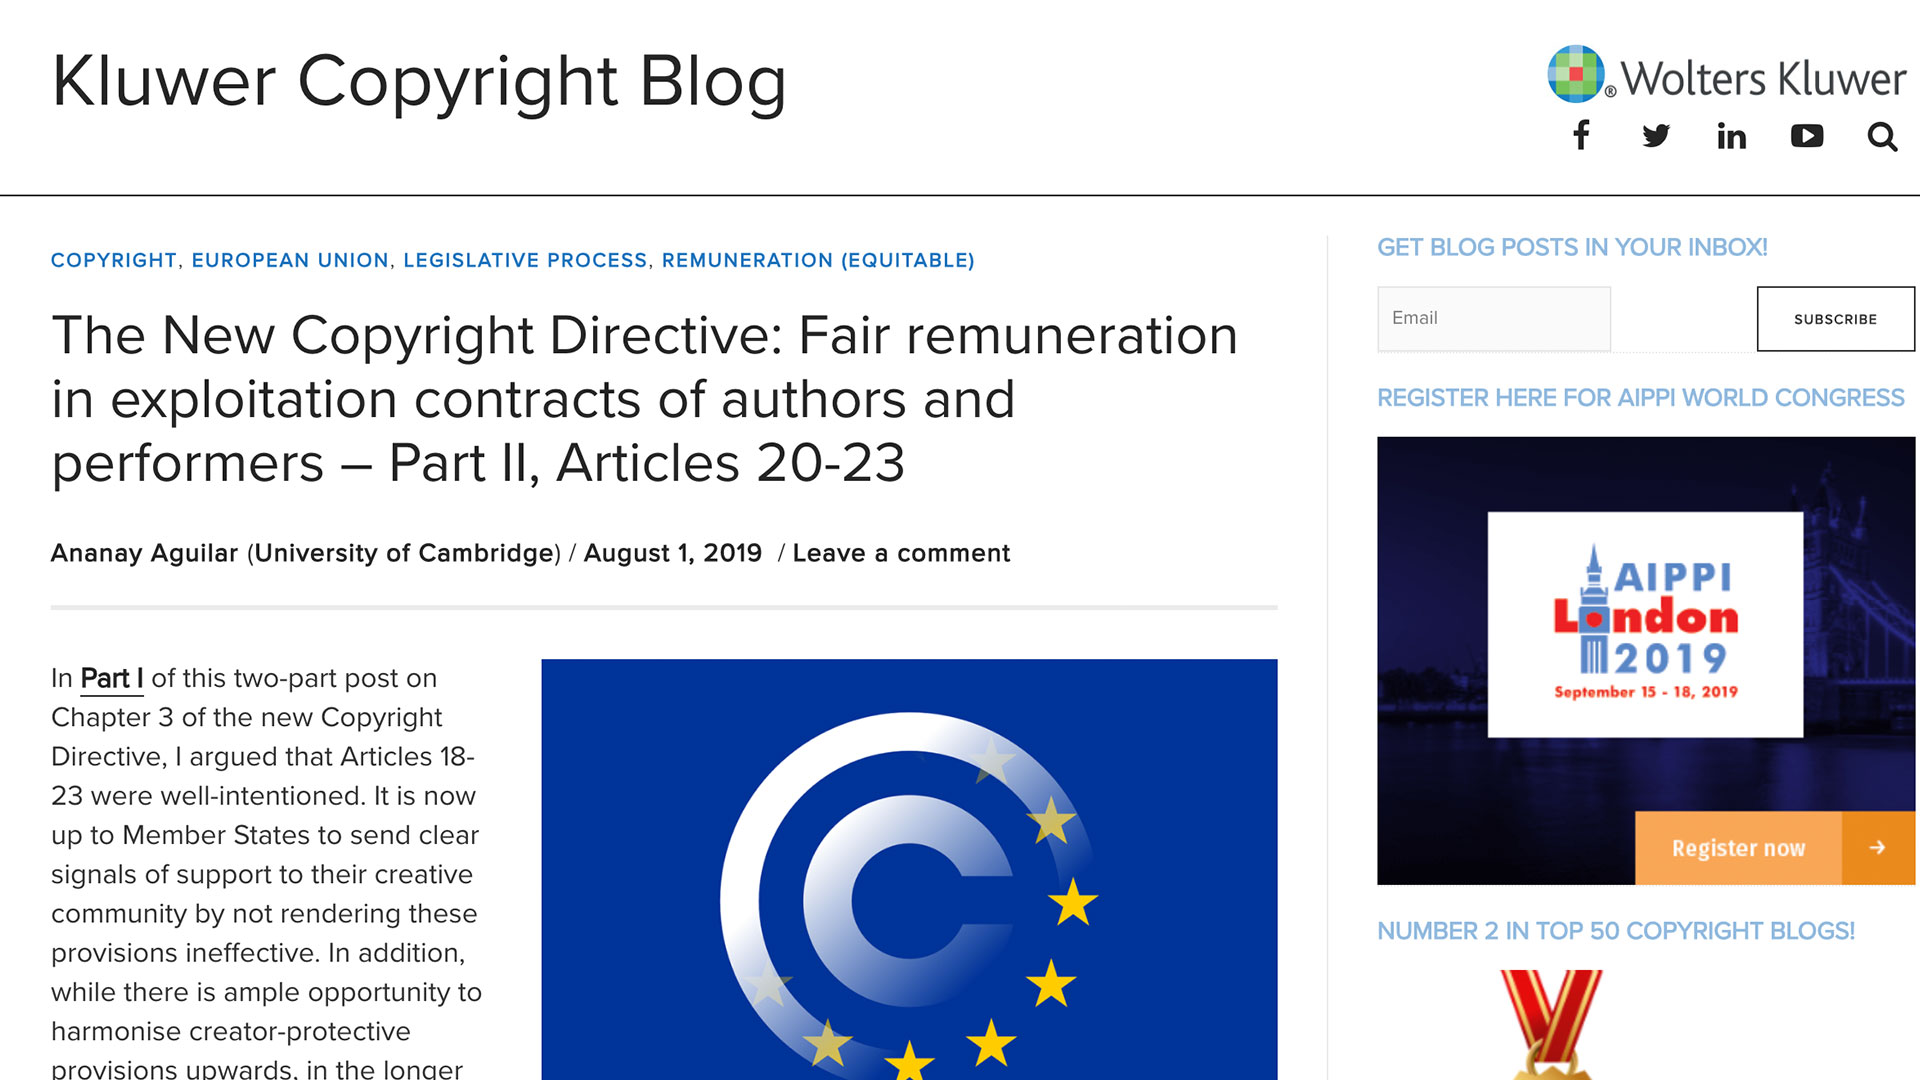 Fairness Rocks News The New Copyright Directive: Fair remuneration in exploitation contracts of authors and performers – Part II, Articles 20-23